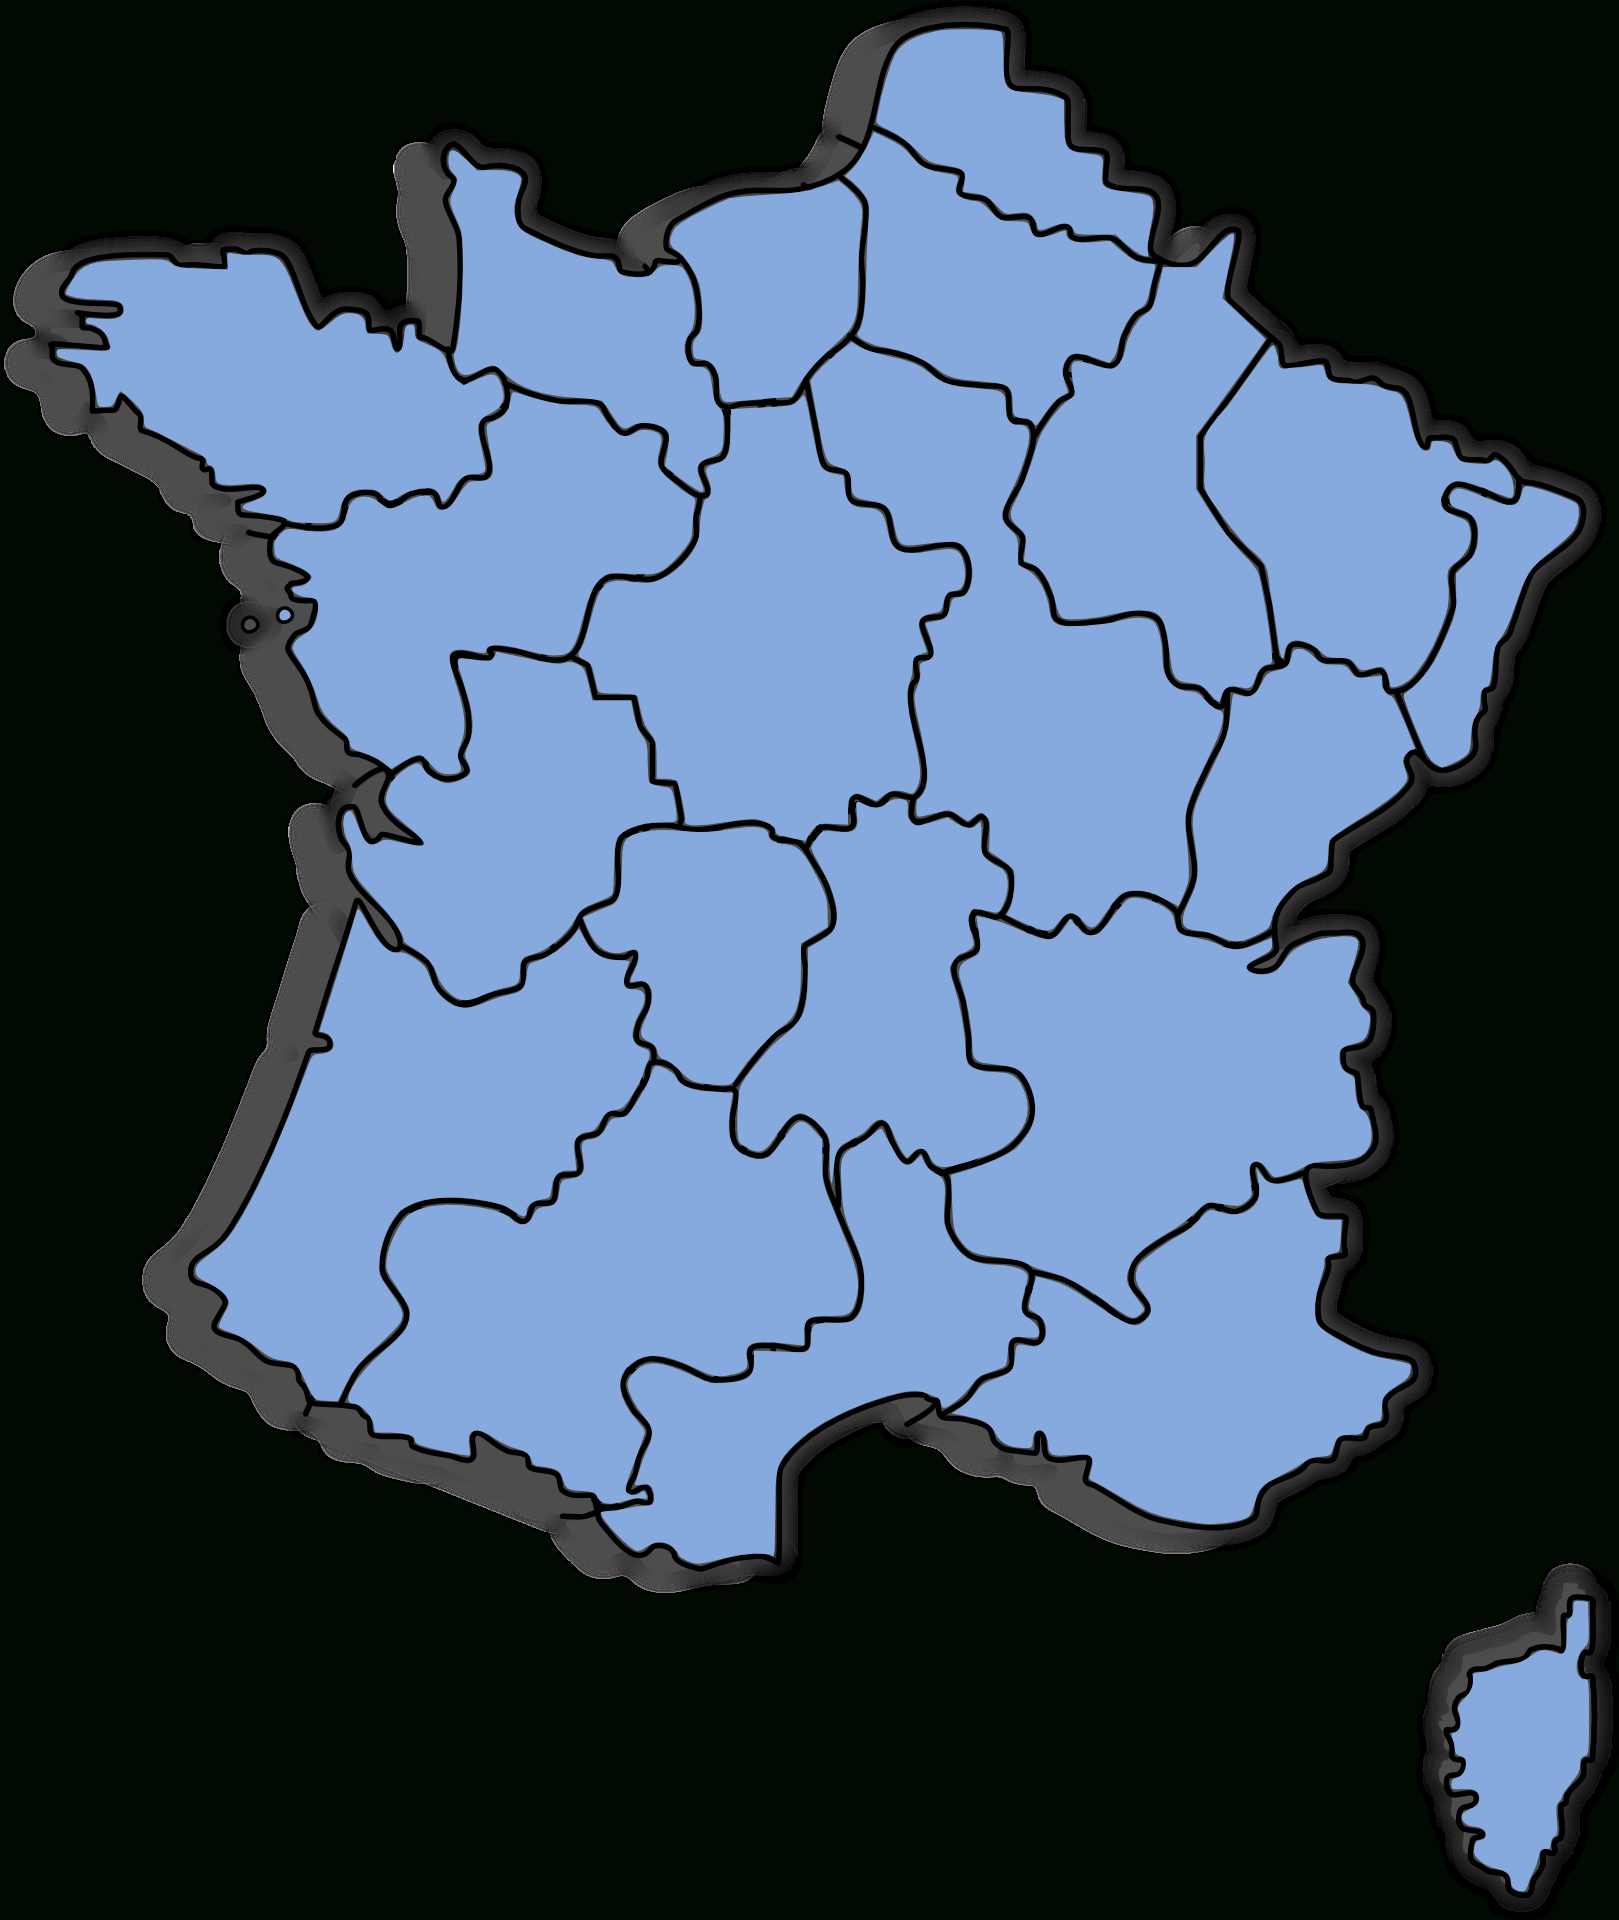 File:carte Départements France - Wikimedia Commons intérieur Carte De France Des Départements